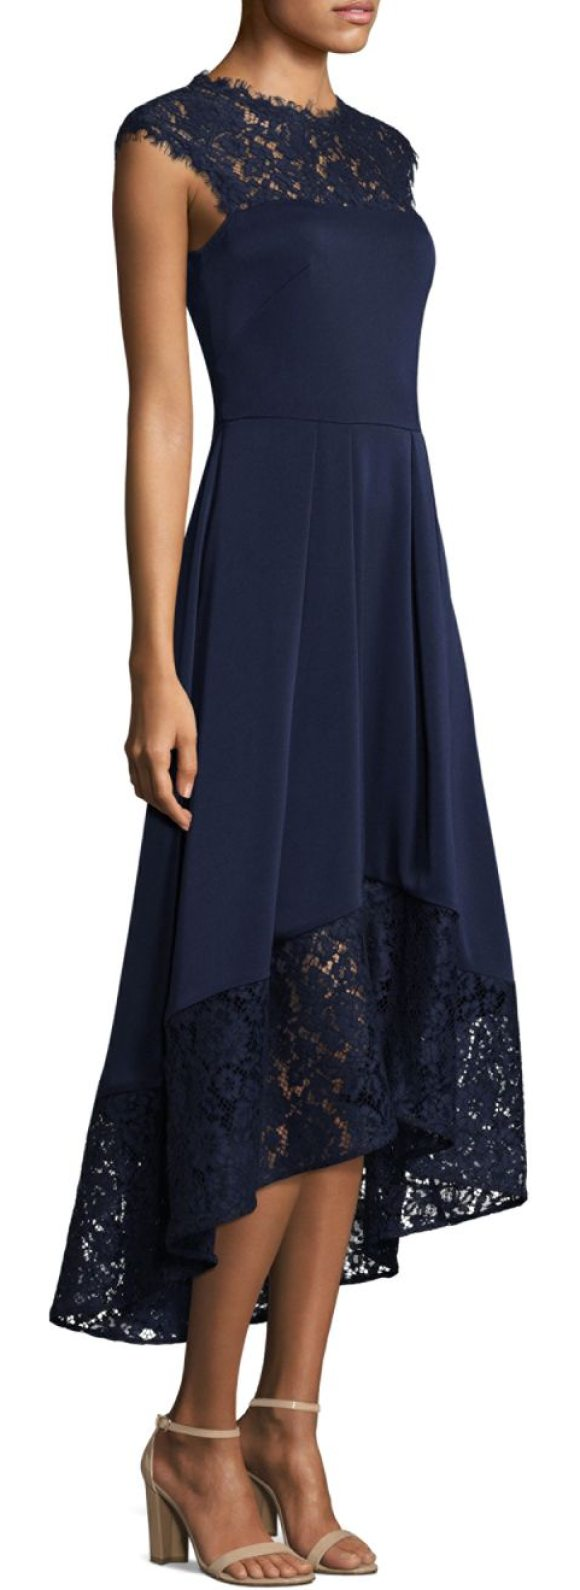 Shoshanna Cap Sleeve Lace Hi-Lo Dress in Blue | Shopstasy